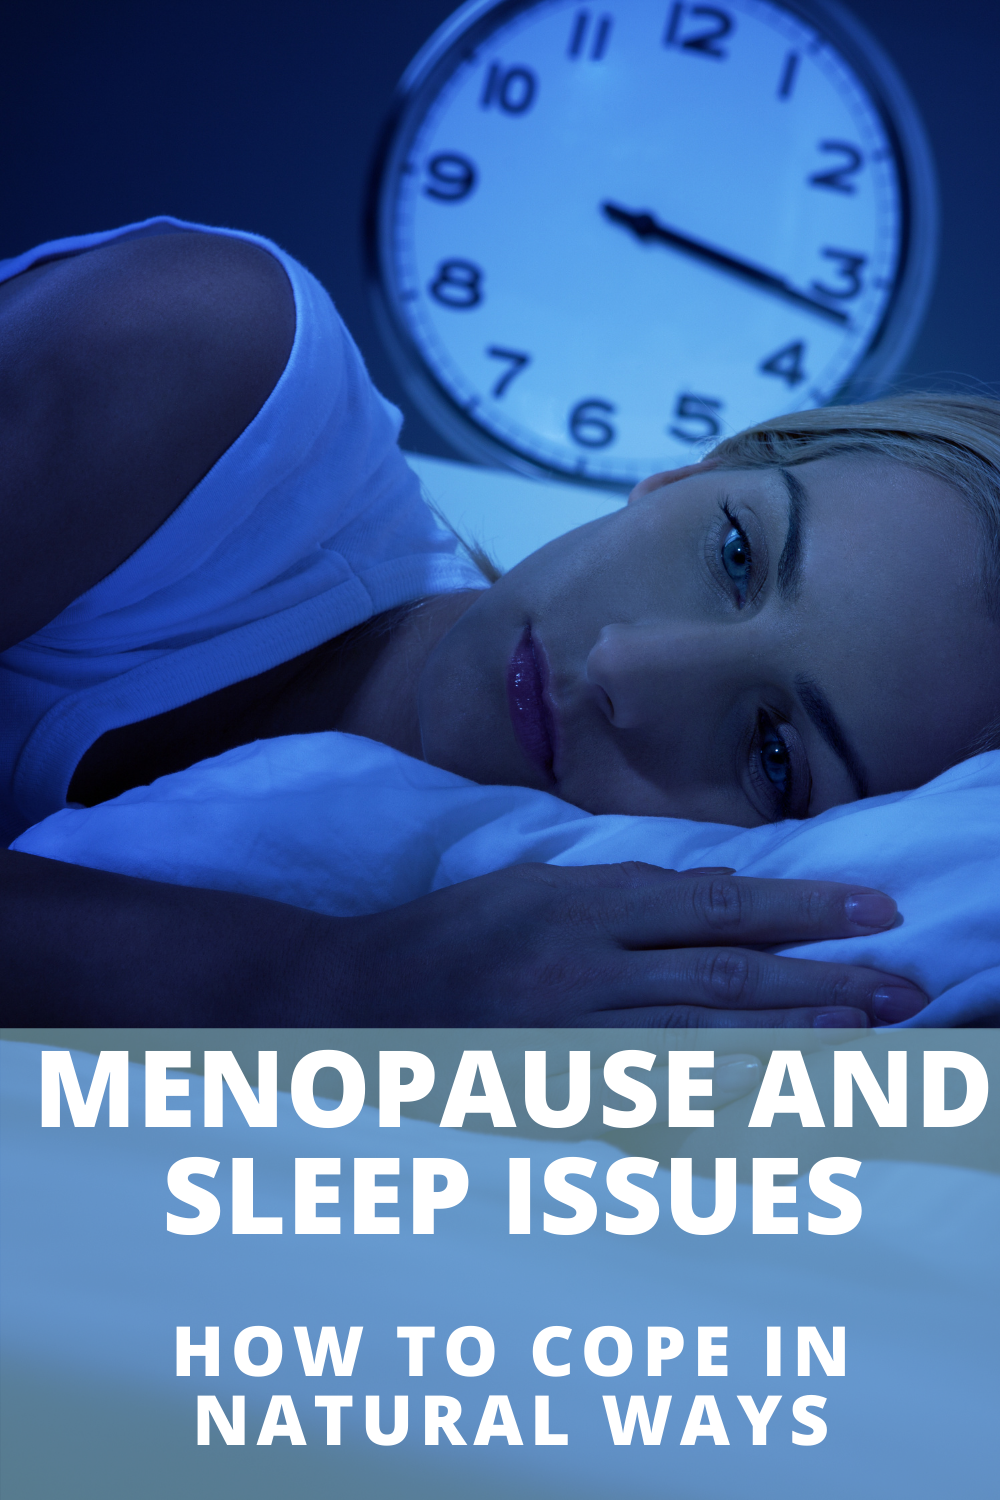 7 Powerful Natural Remedies That Can Help Your Menopausal Sleep Problems